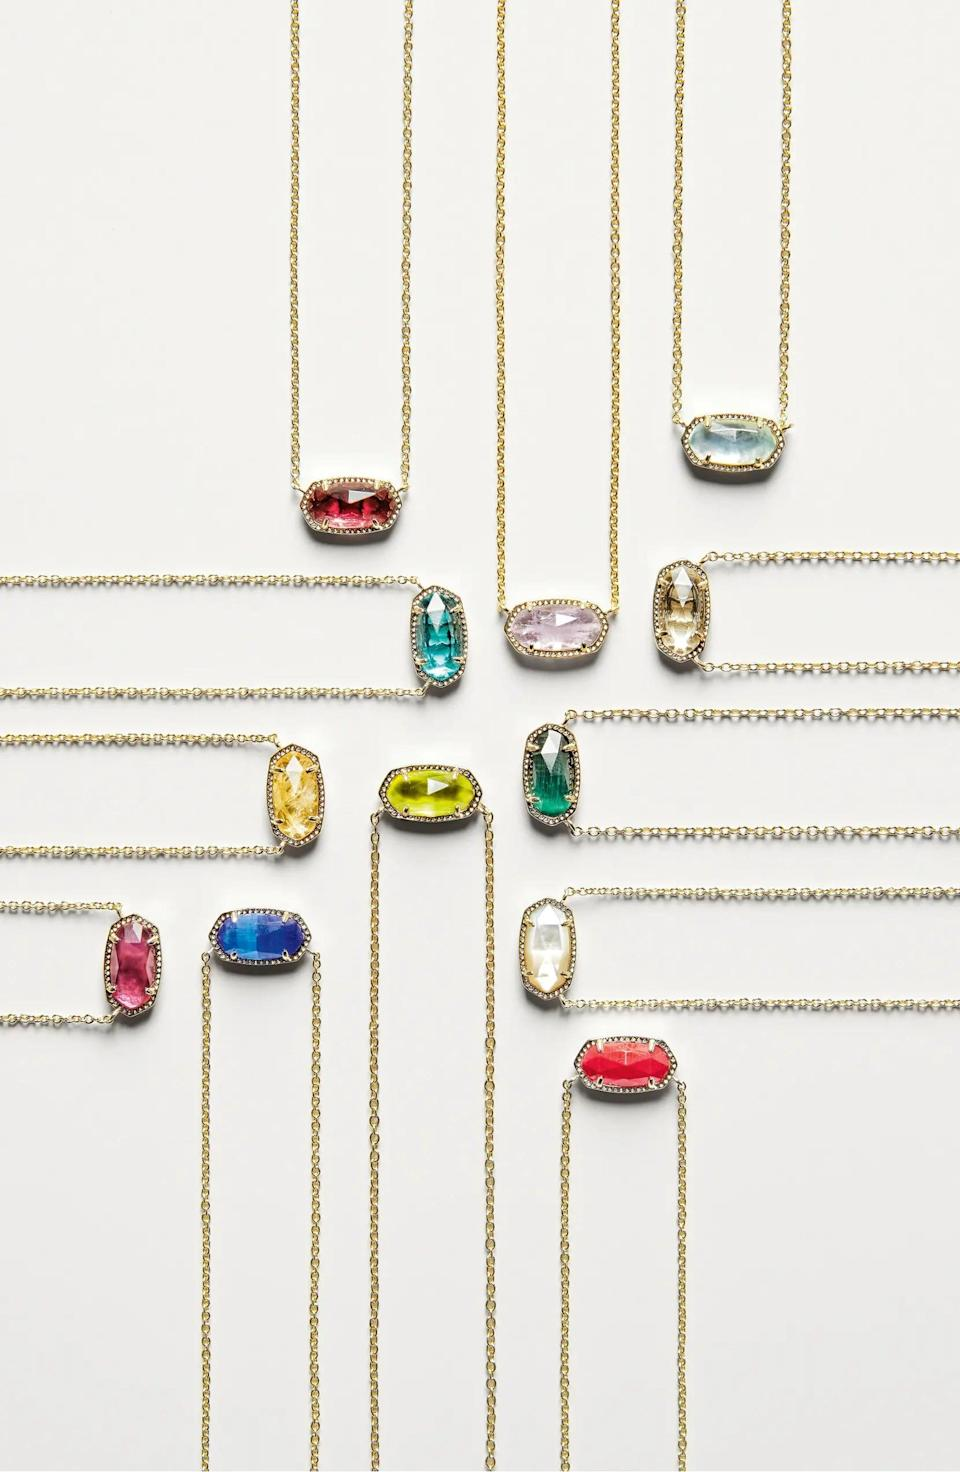 <p>Make someone feel special with the <span>Kendra Scott Elisa Birthstone Pendant Necklace</span> ($50). It comes in 12 choices that represent each birth month, and you can get them theirs or that of someone special to them. </p>